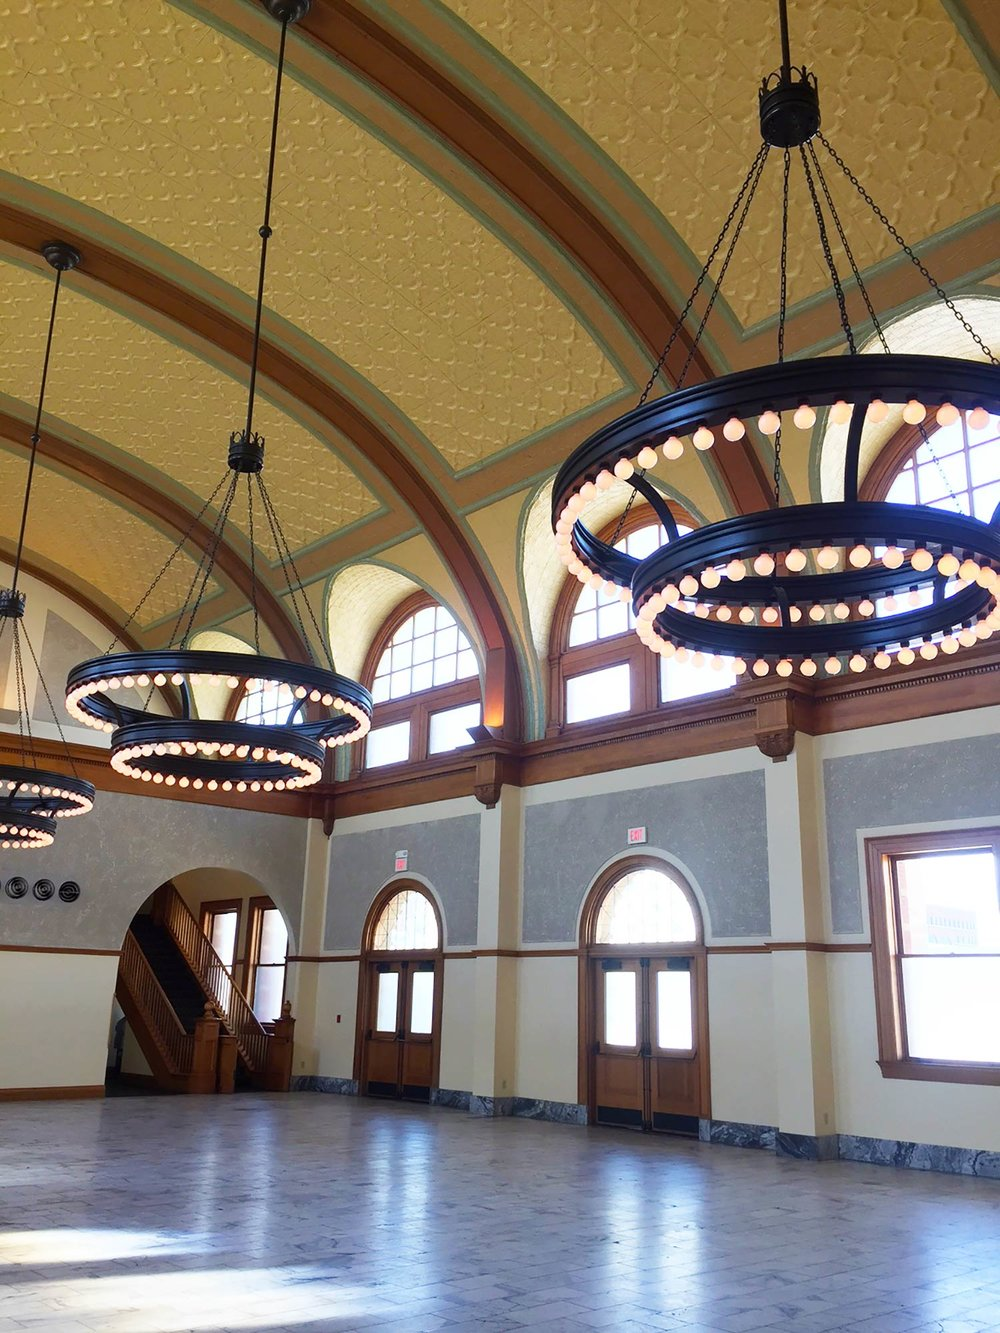 Fort worth wedding venue Ashton Depot large chandeliers